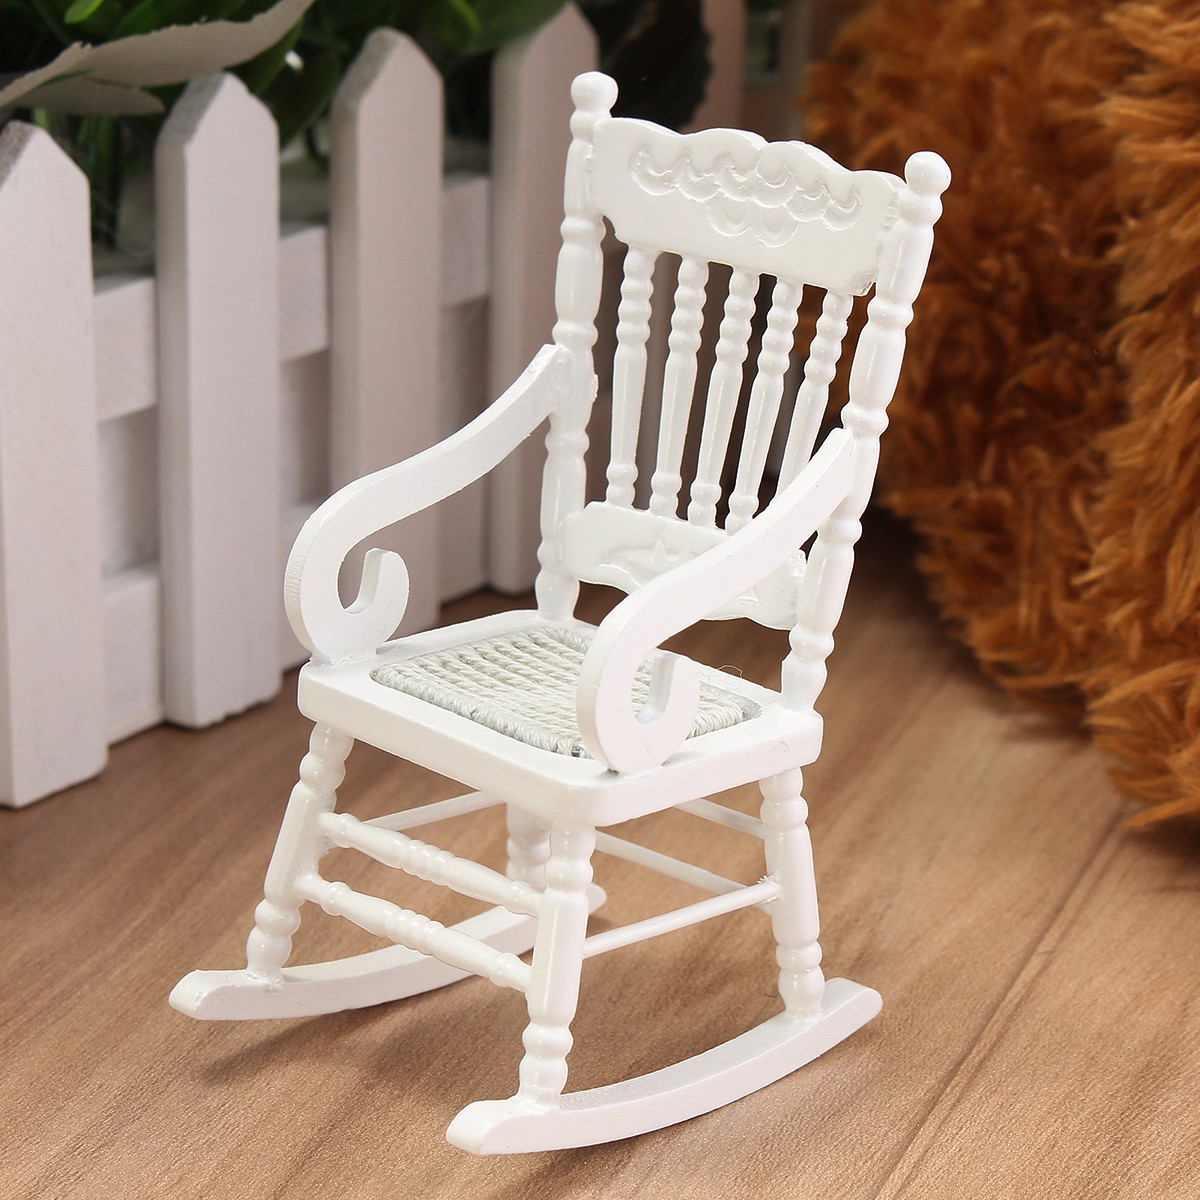 1:12 Dollhouse Miniature Wooden Rocking Chair Furniture Accessories Decor ToysDS